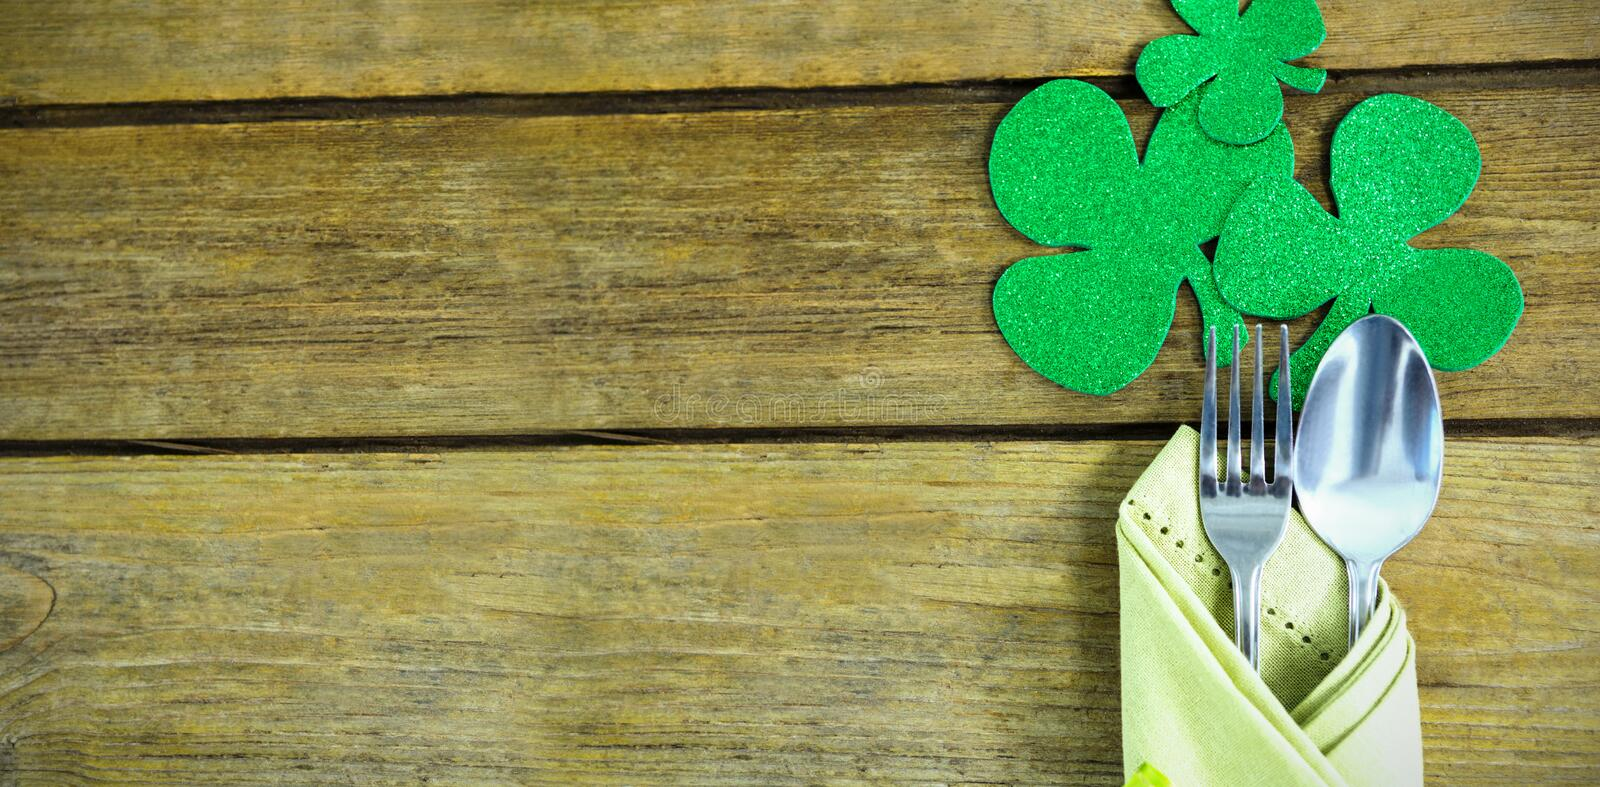 St Patricks Day fork and spoon wrapped in napkin with shamrocks royalty free stock images